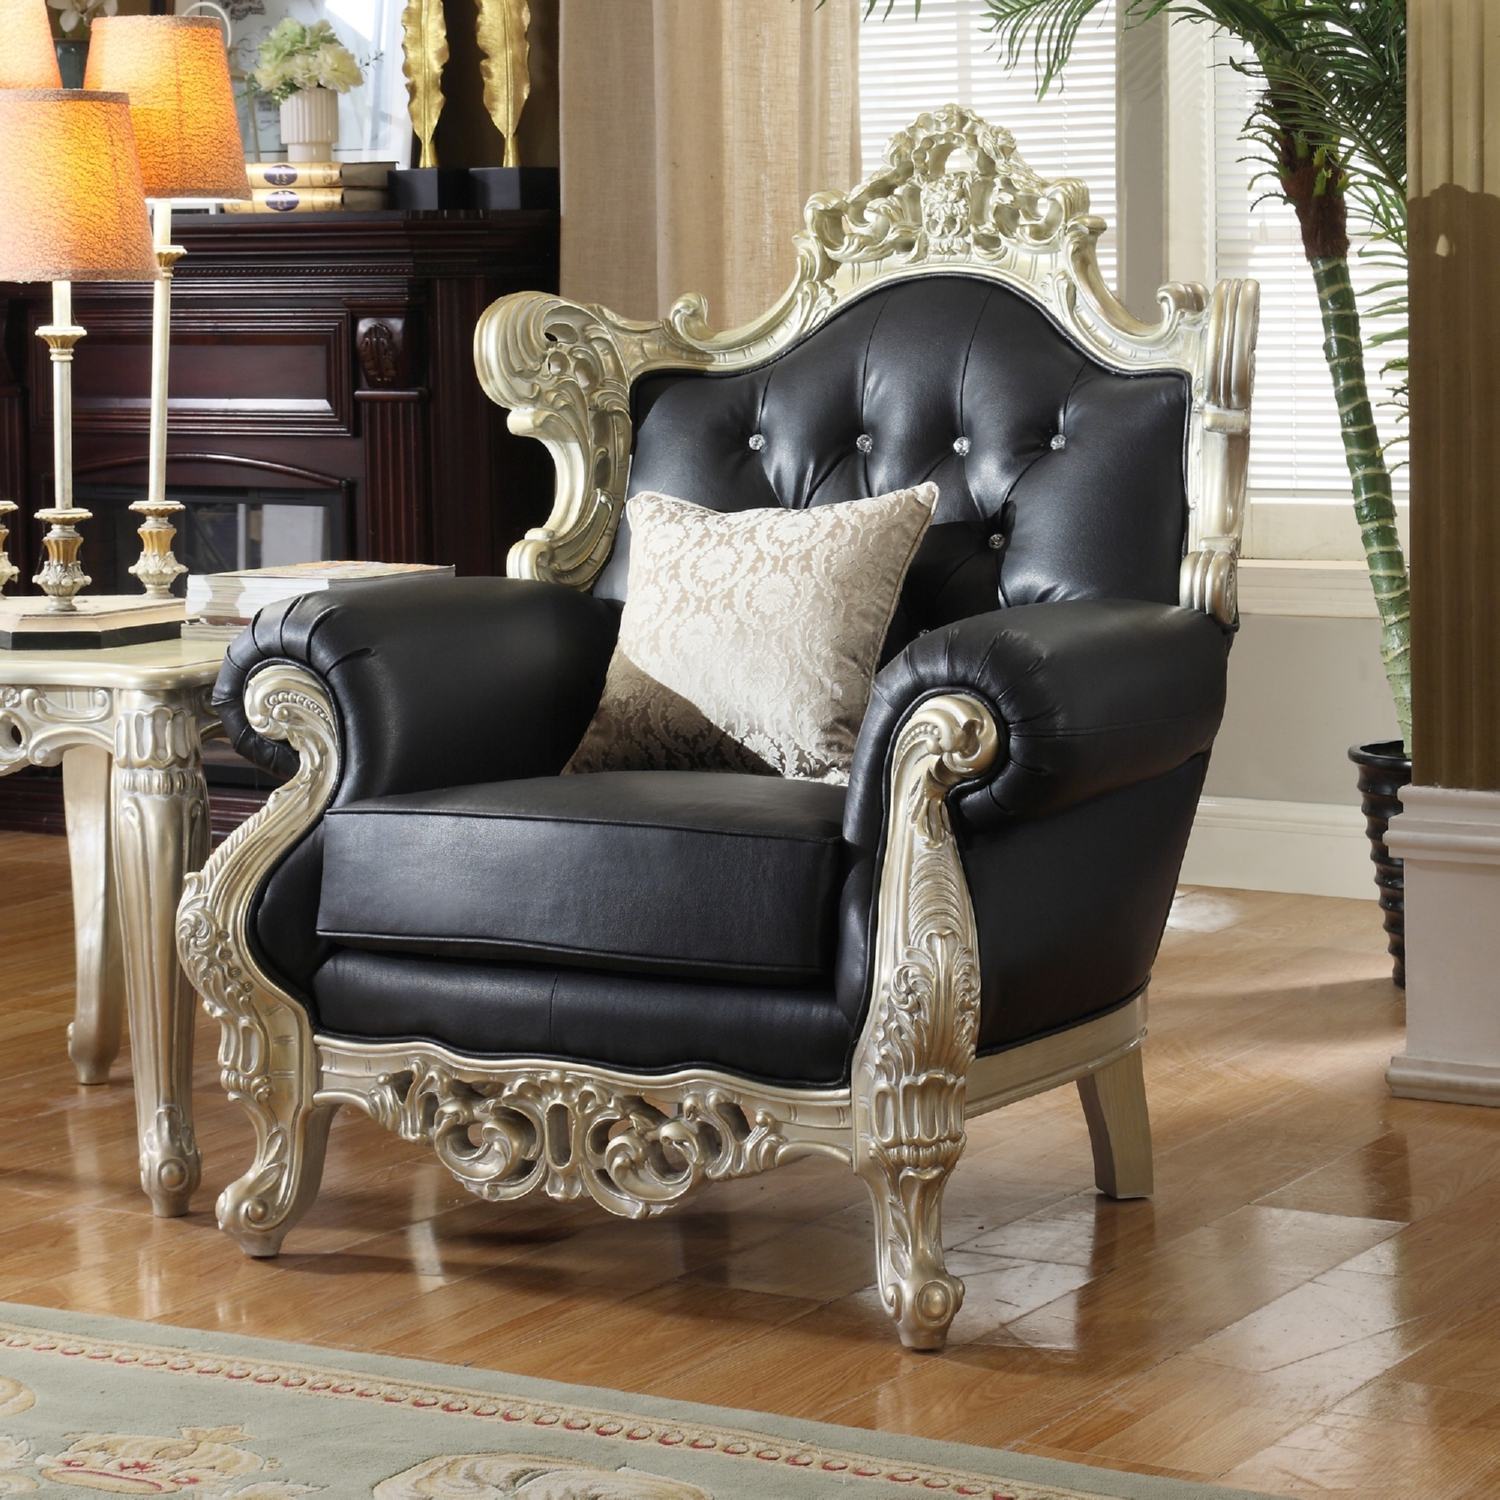 Meridian Furniture 602 C Cesar Black Crystal Tufted Leather Chair